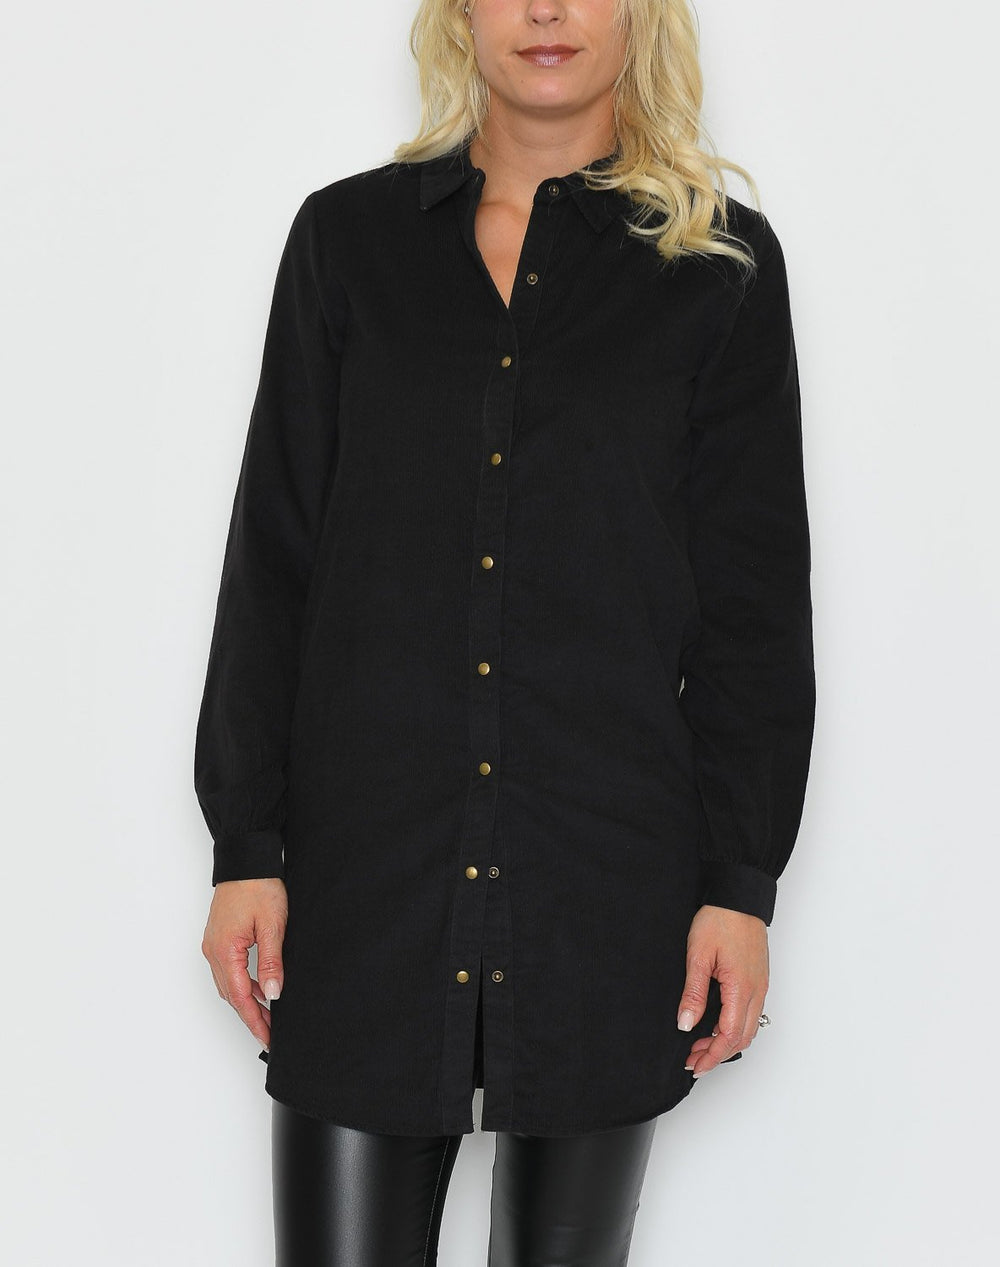 Ofelia Ethel shirt black - Online-Mode